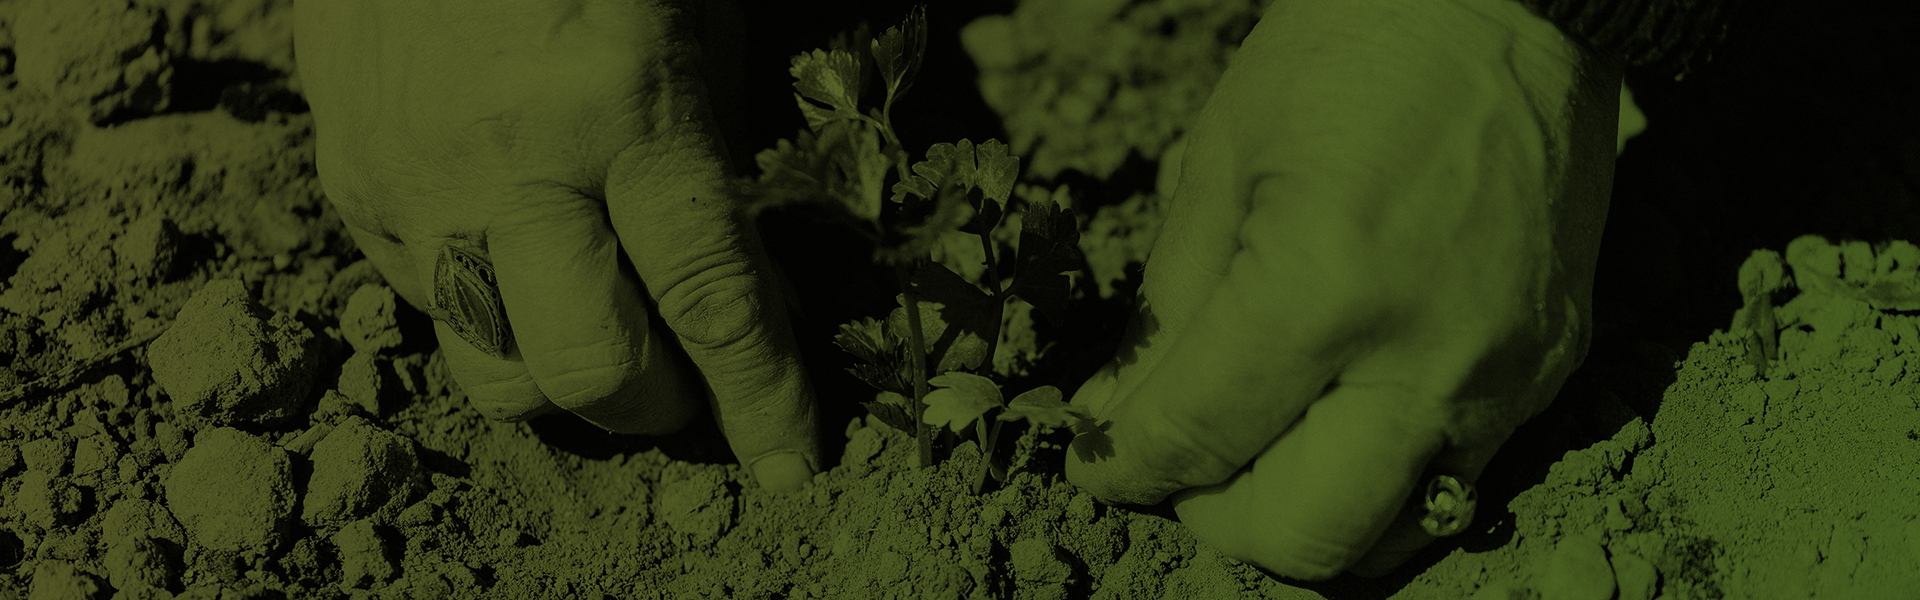 Stock photograph, tinted green showing hands planting parsley in dry sandy soil